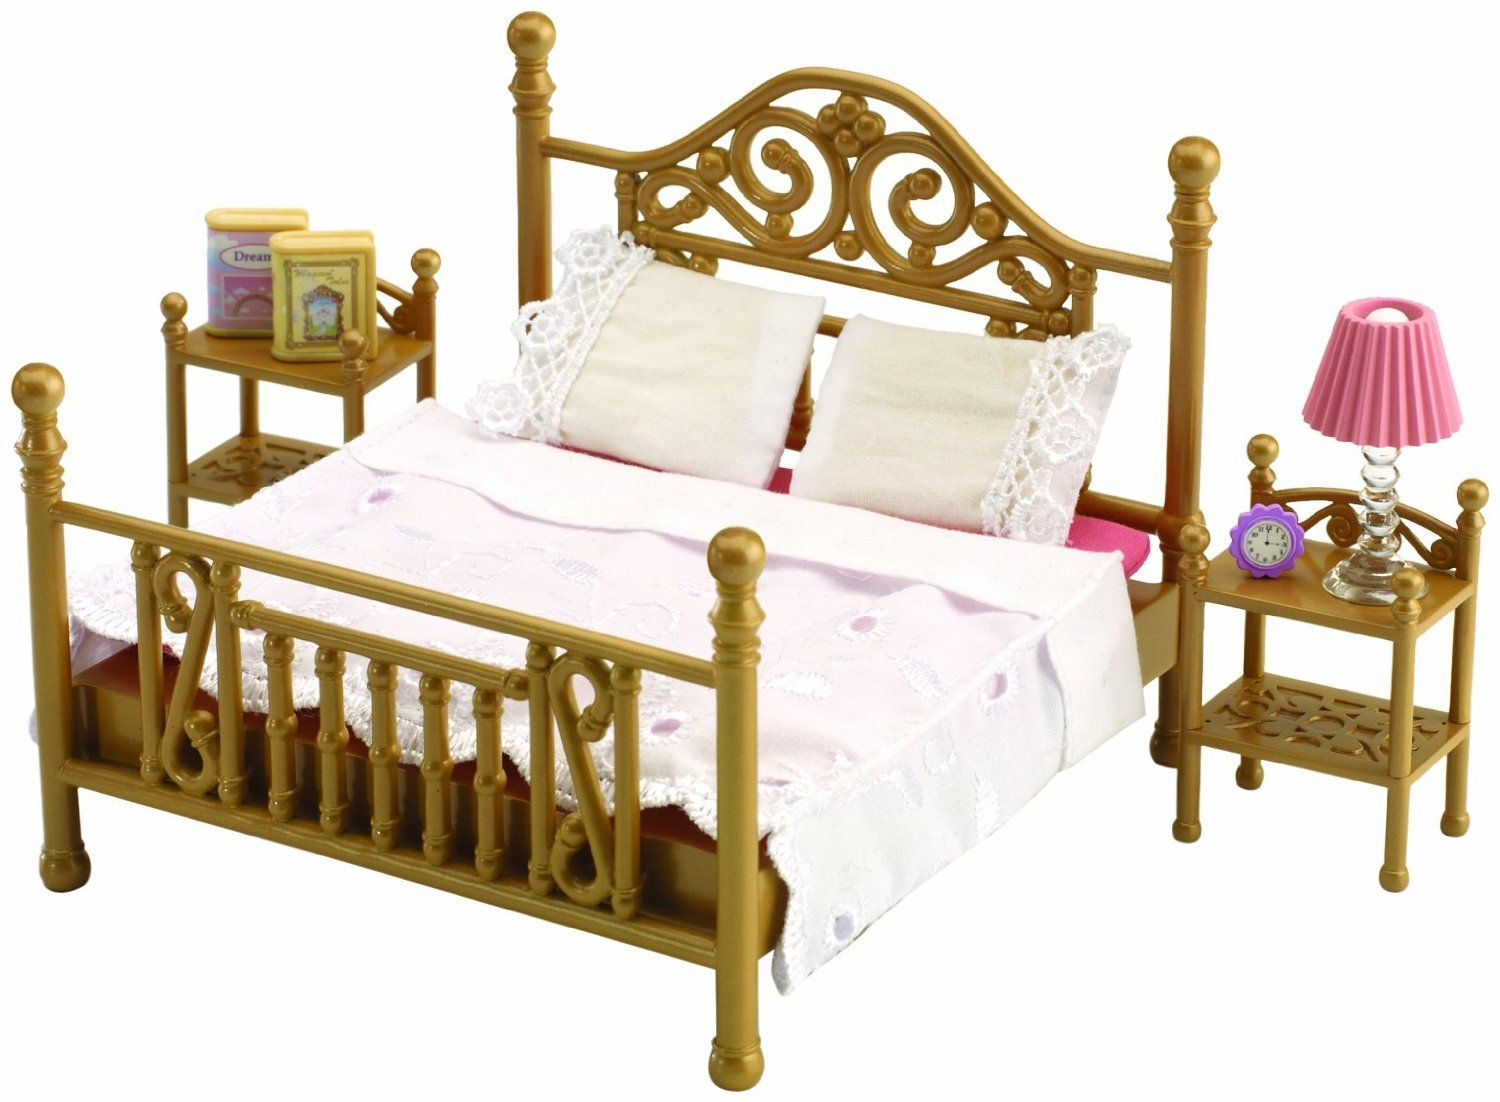 Sylvanian Families Luxury Brass Bed | Calico Critters/Sylvanian ...